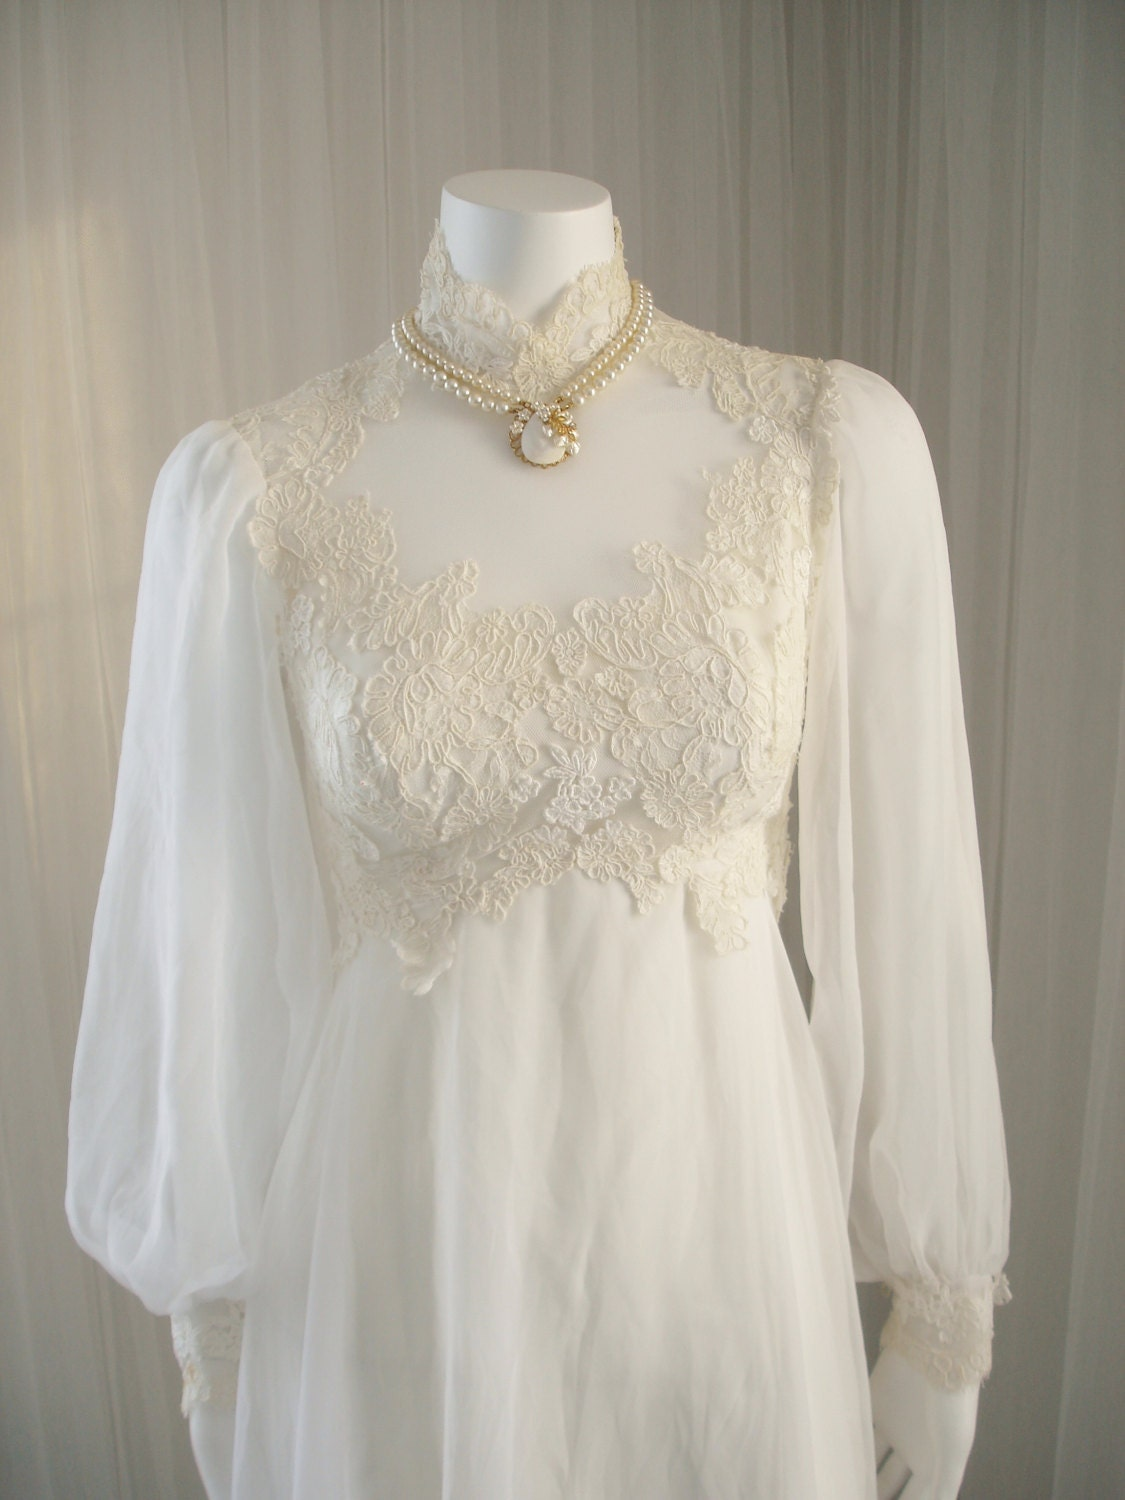 House Of Bianchi Bridal Gowns - Best Ideas Gowns